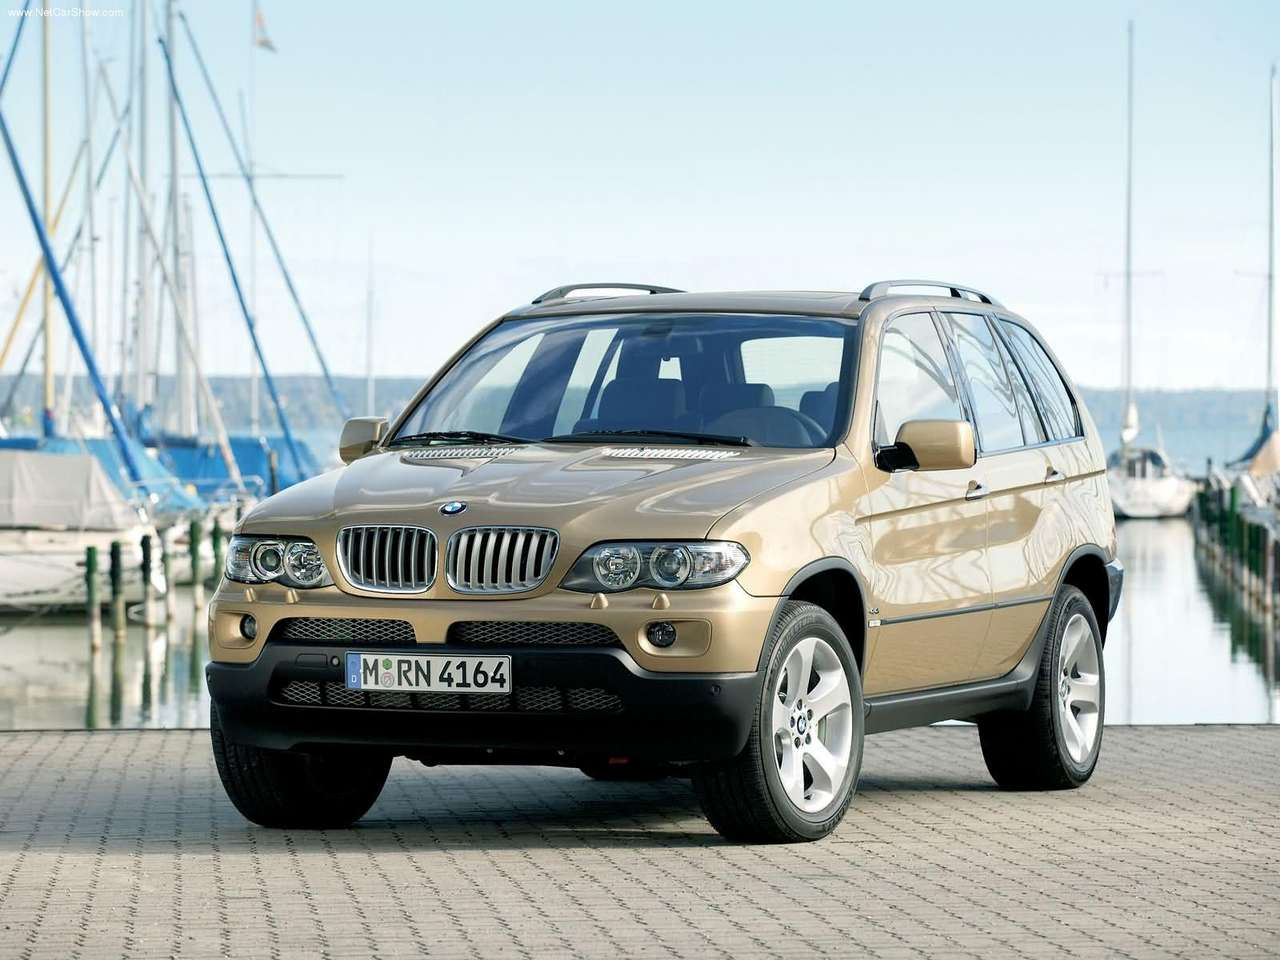 bmw x5 2004 bin3aiah cars. Black Bedroom Furniture Sets. Home Design Ideas